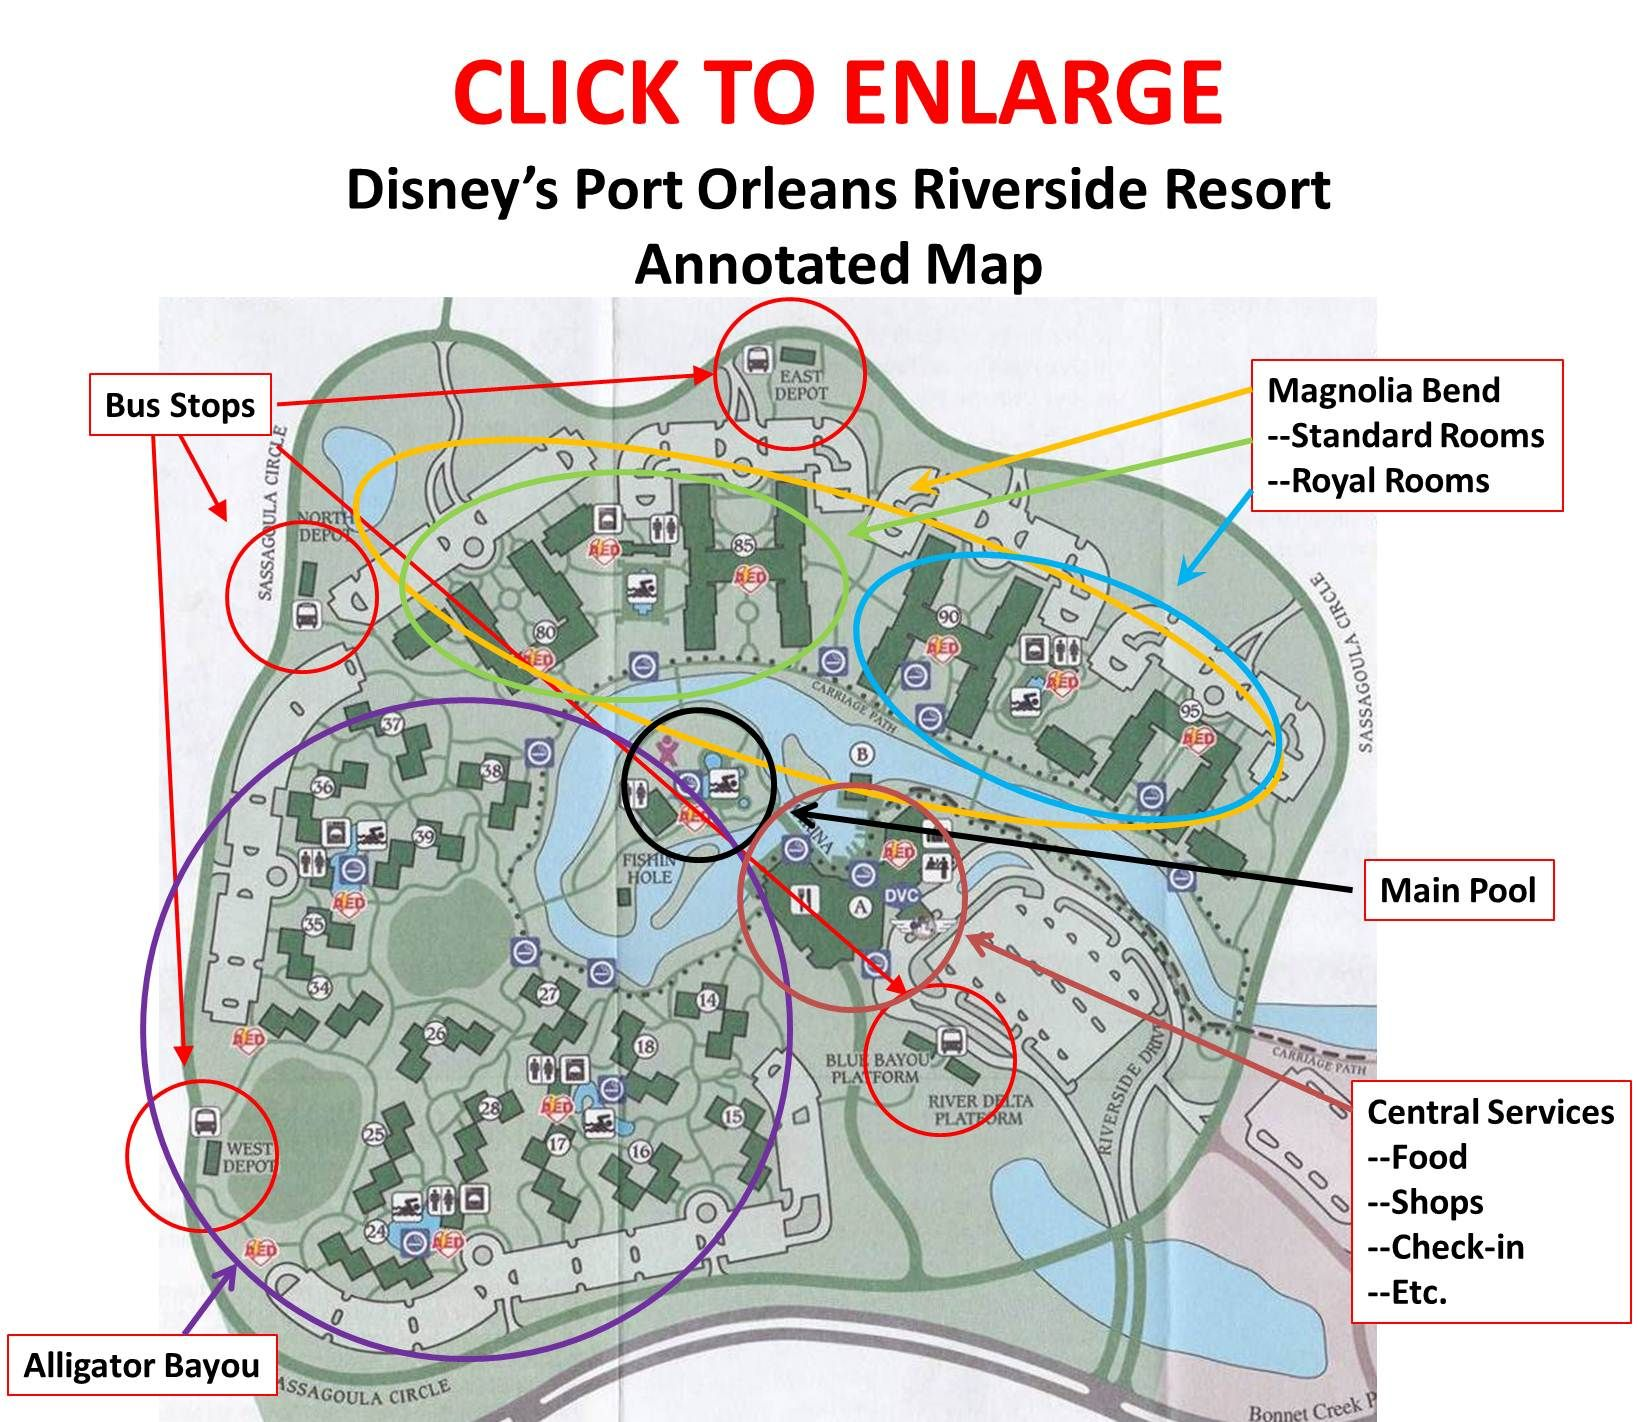 Annotated Map Of Disneys Port Orleans Riverside Resort